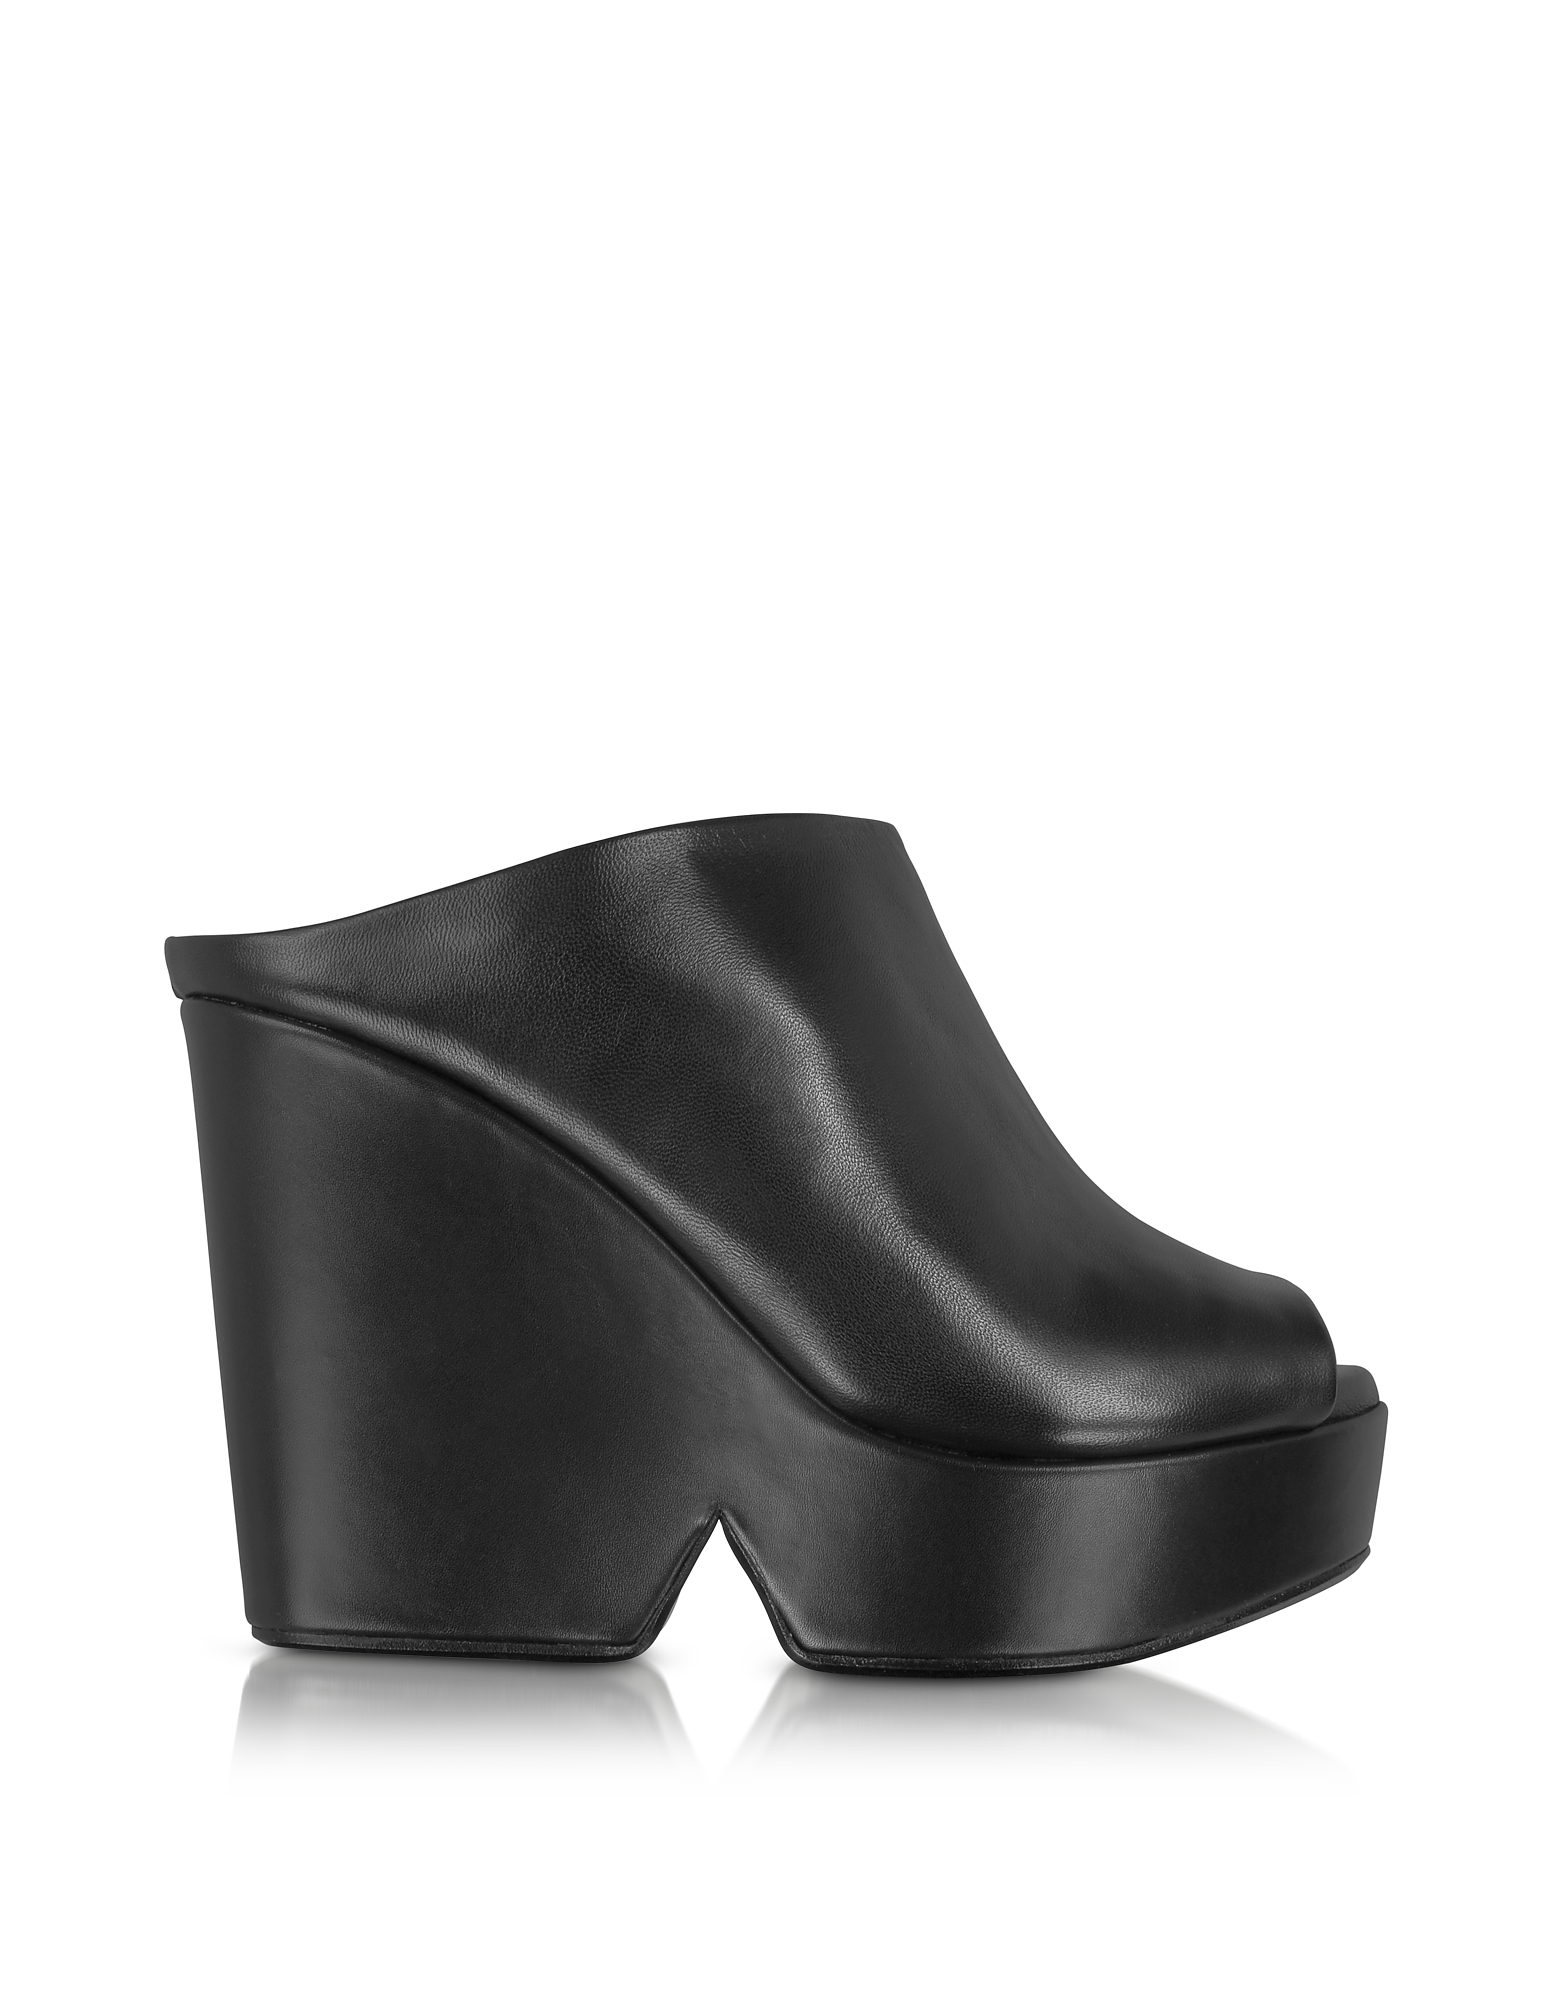 Robert Clergerie Shoes, Dina Black Leather Wedge Mule